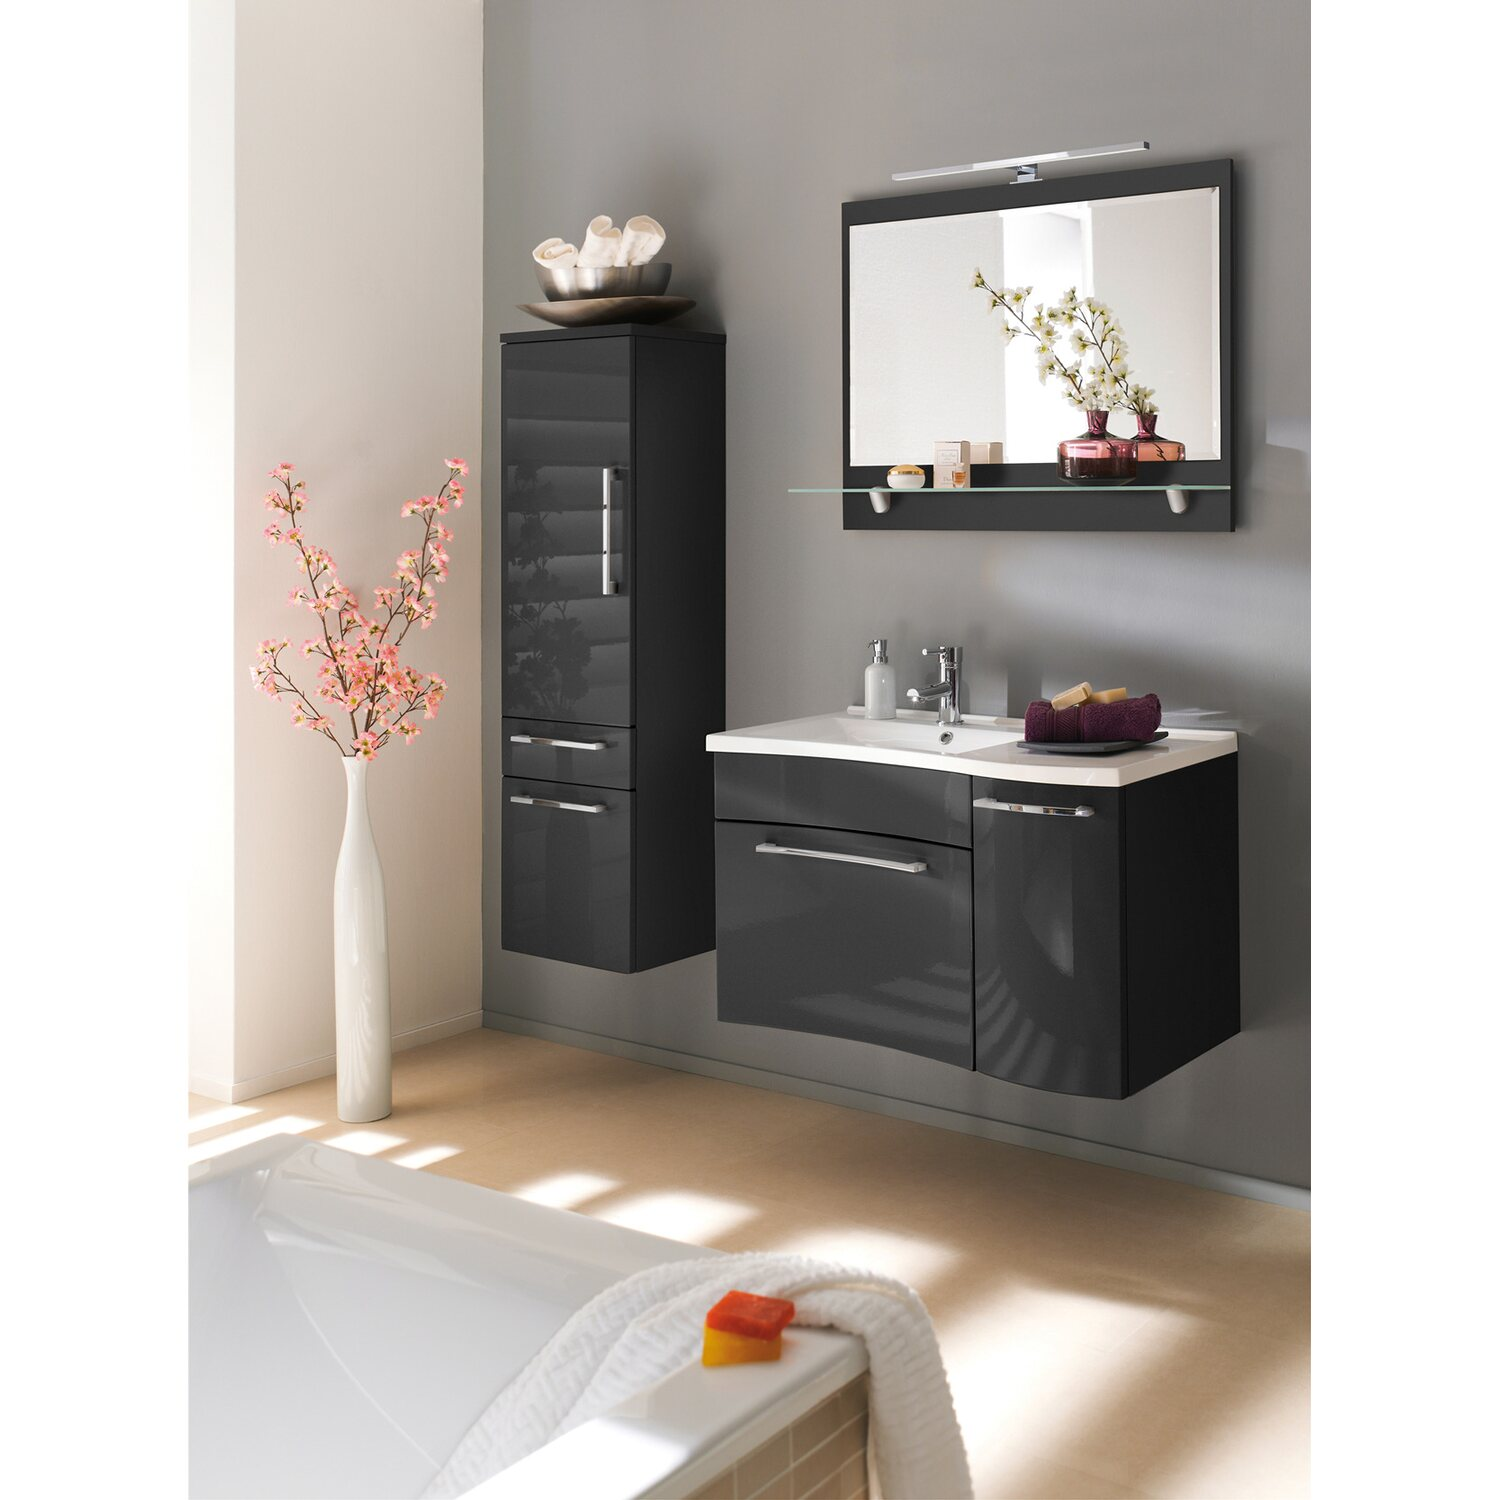 posseik hochschrank 40 cm laonda anthrazit kaufen bei obi. Black Bedroom Furniture Sets. Home Design Ideas